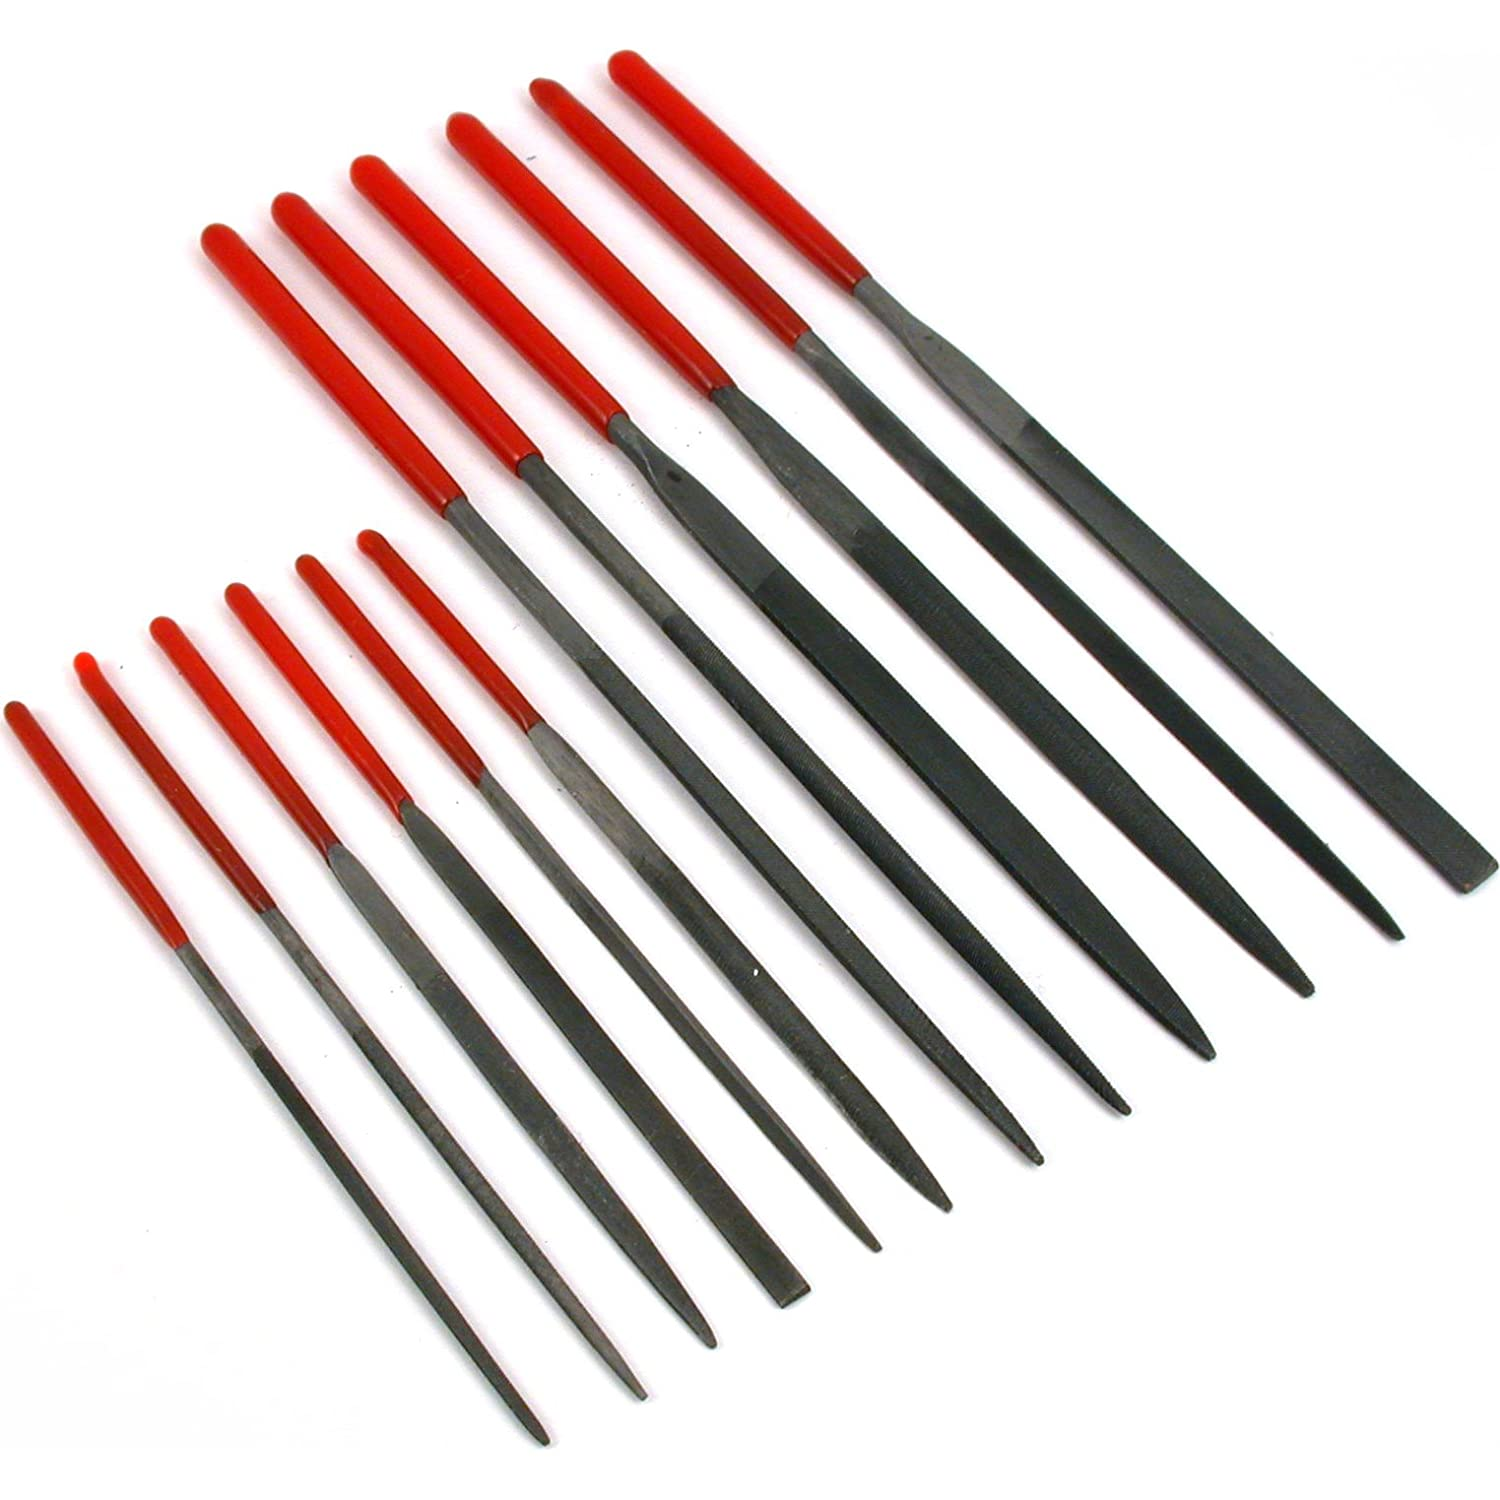 Needle File Set 6 x 100mm//6 x 140mm SE 734NF by SE Dipped Handles